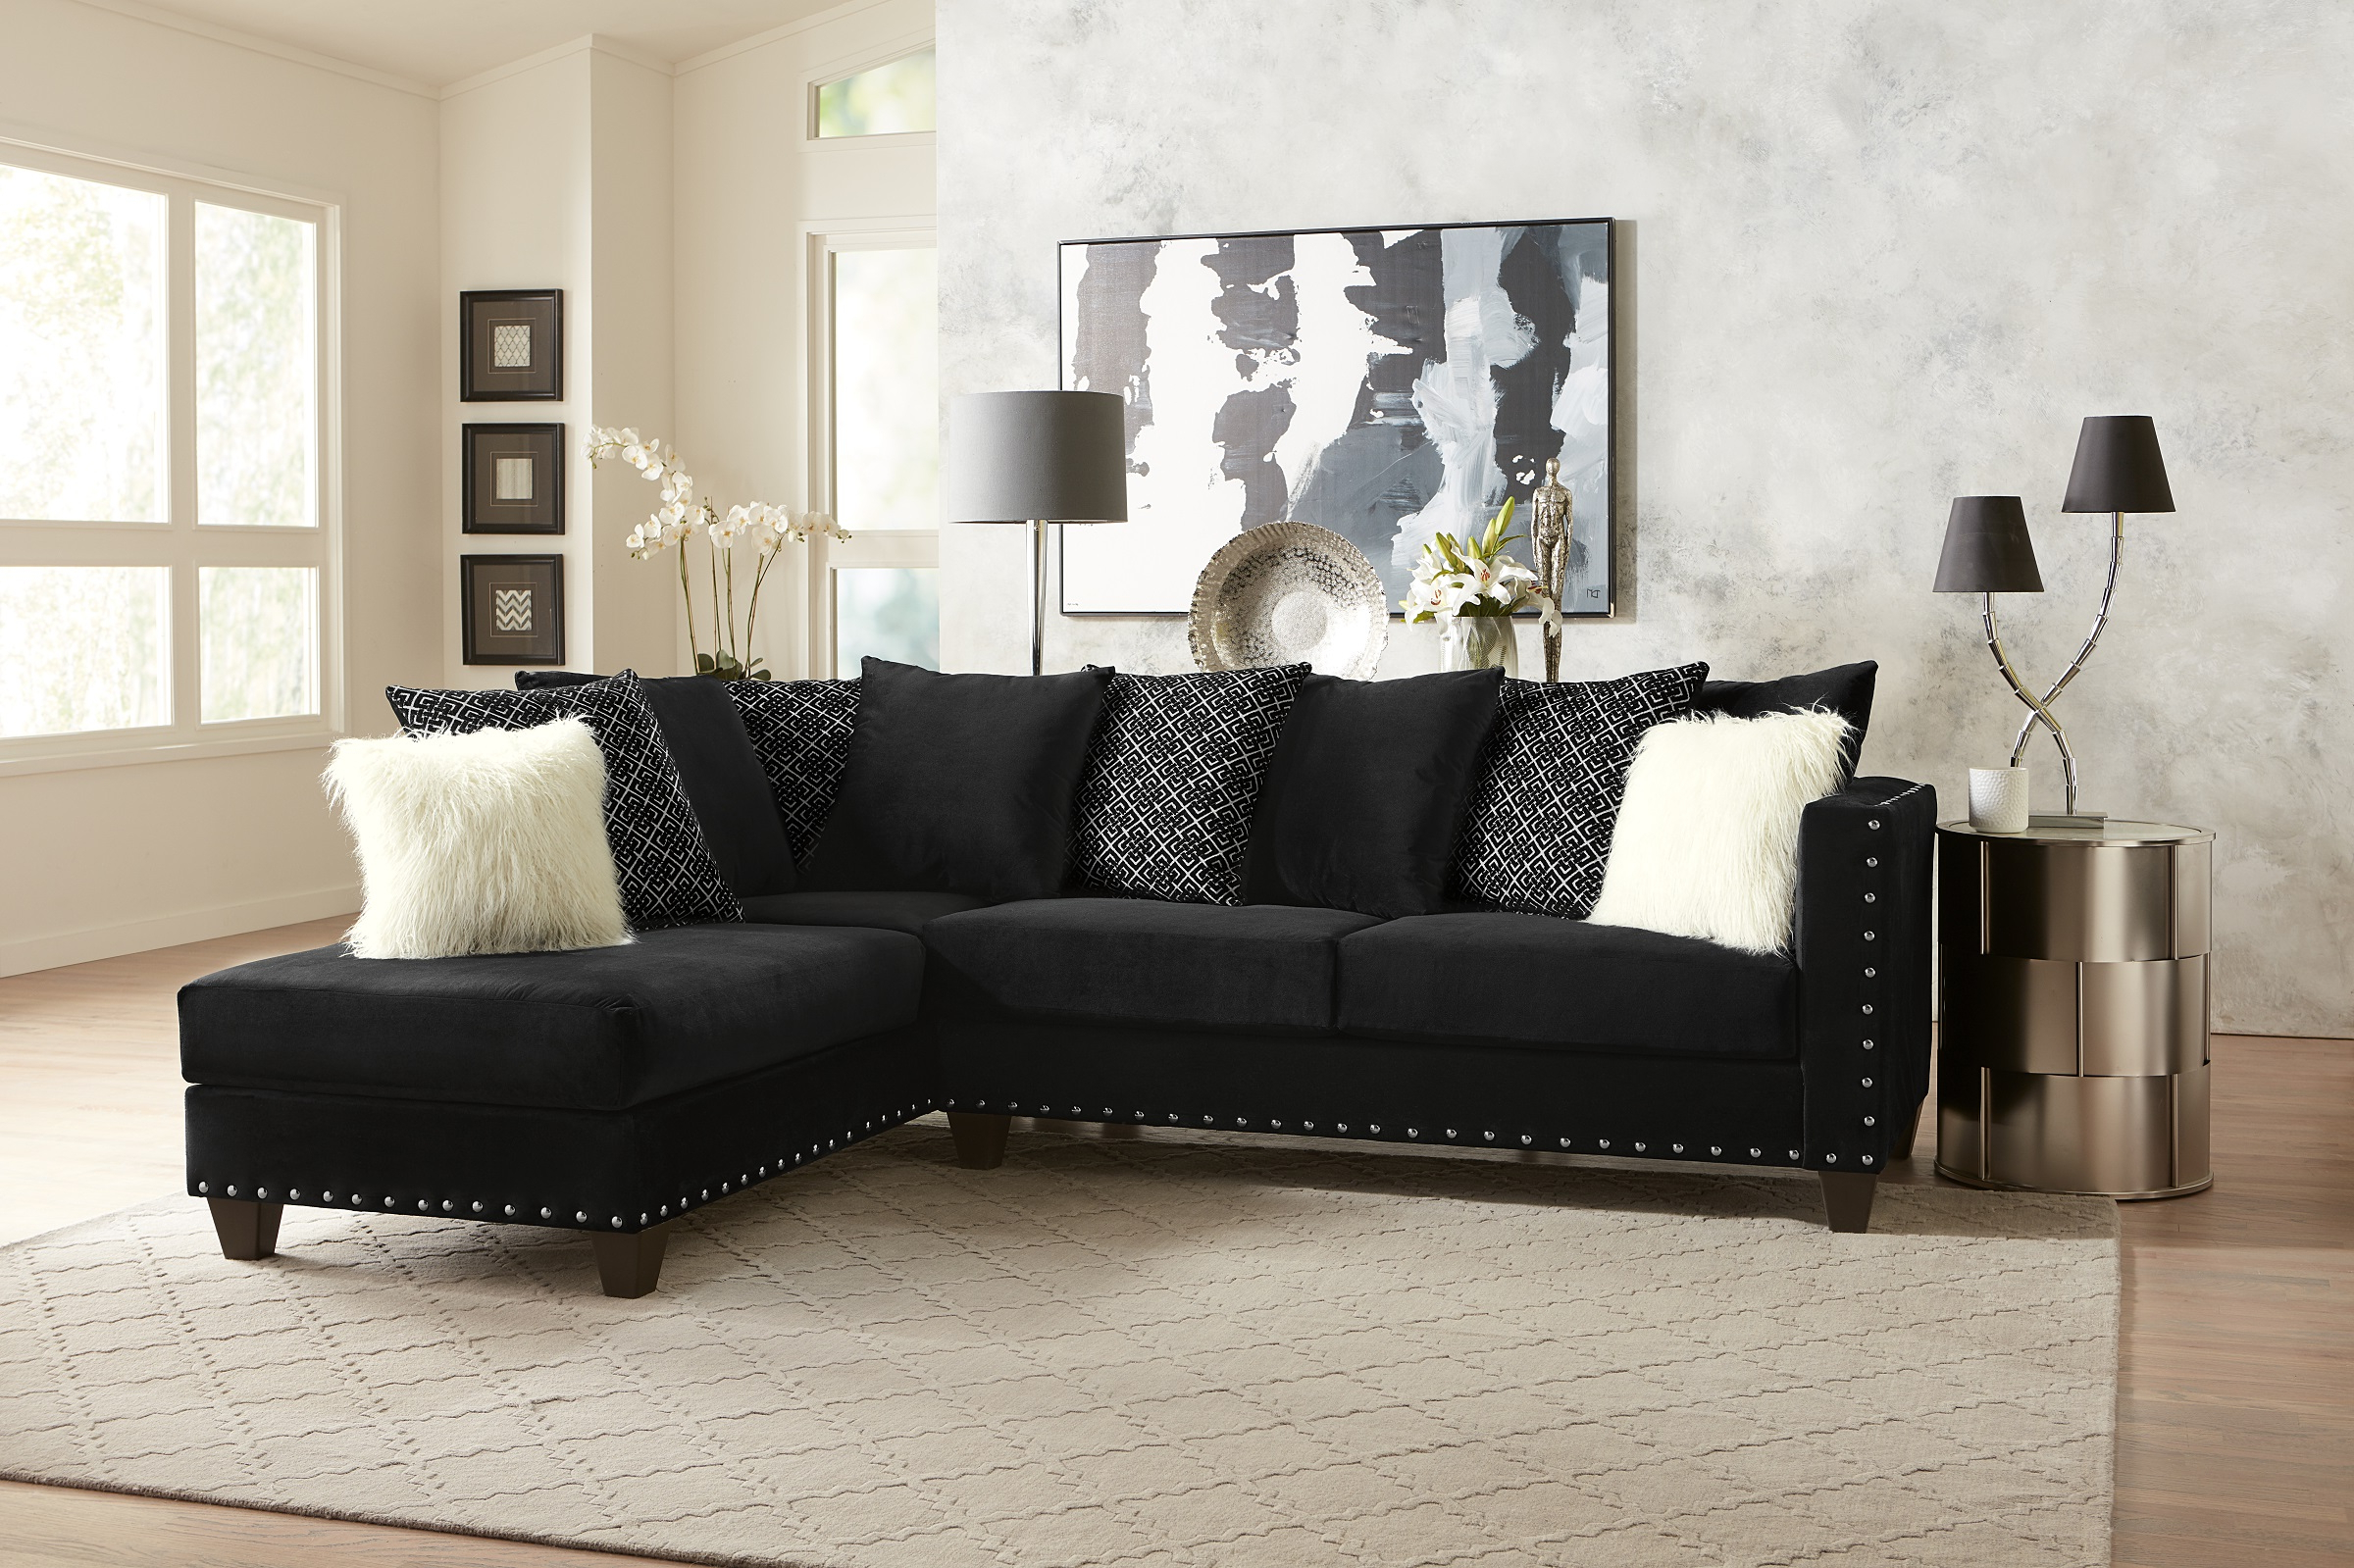 Preferred 4pc Crowningshield Contemporary Chaise Sectional Sofas Pertaining To Living Room Modern Classic Black Fabric Sectional Sofa 2pc (View 3 of 20)